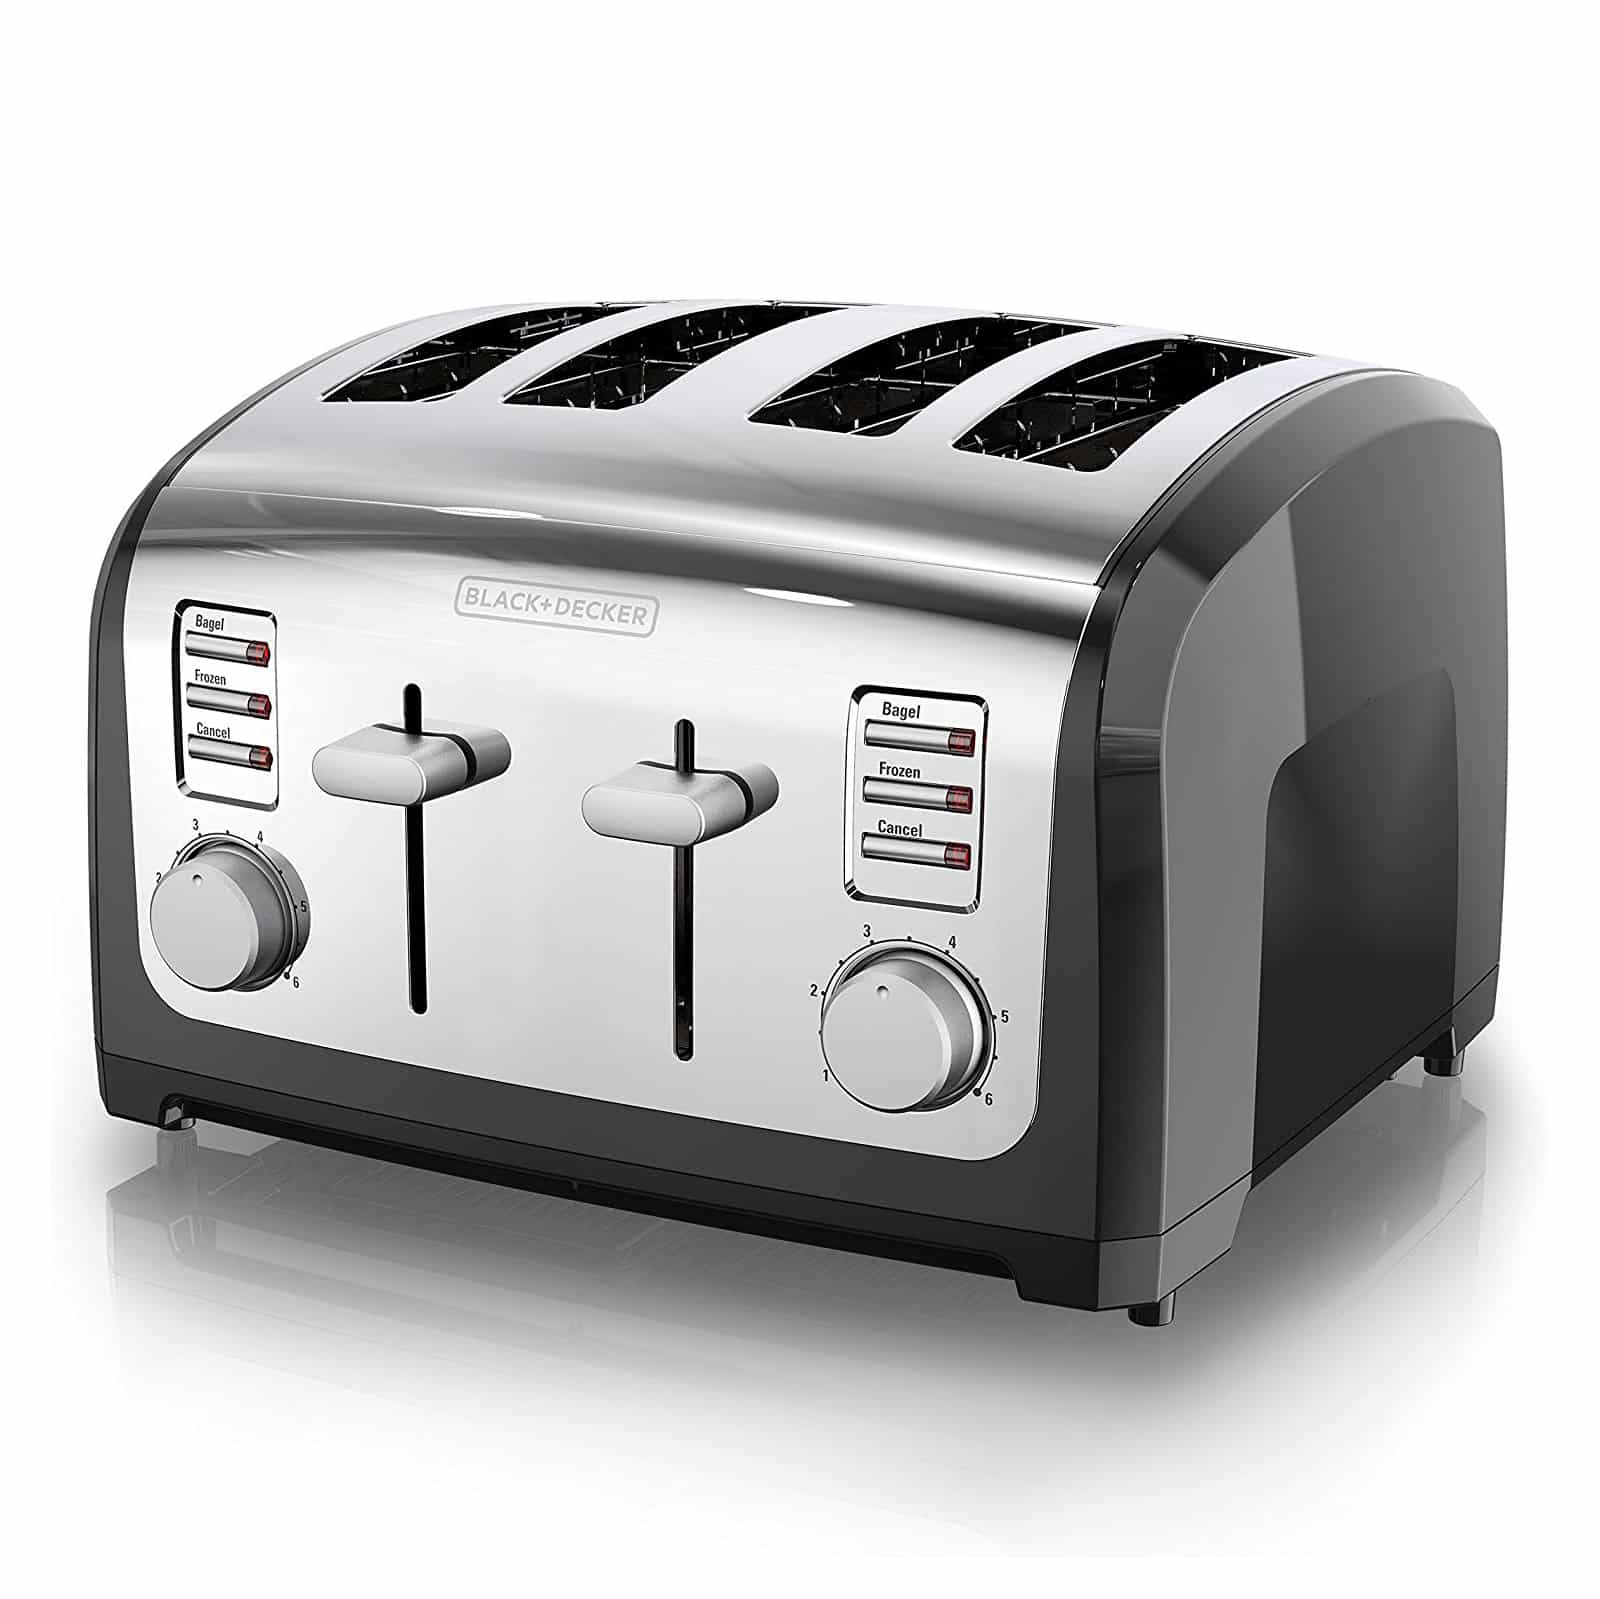 BLACK+DERCKER 4-Slice Toaster